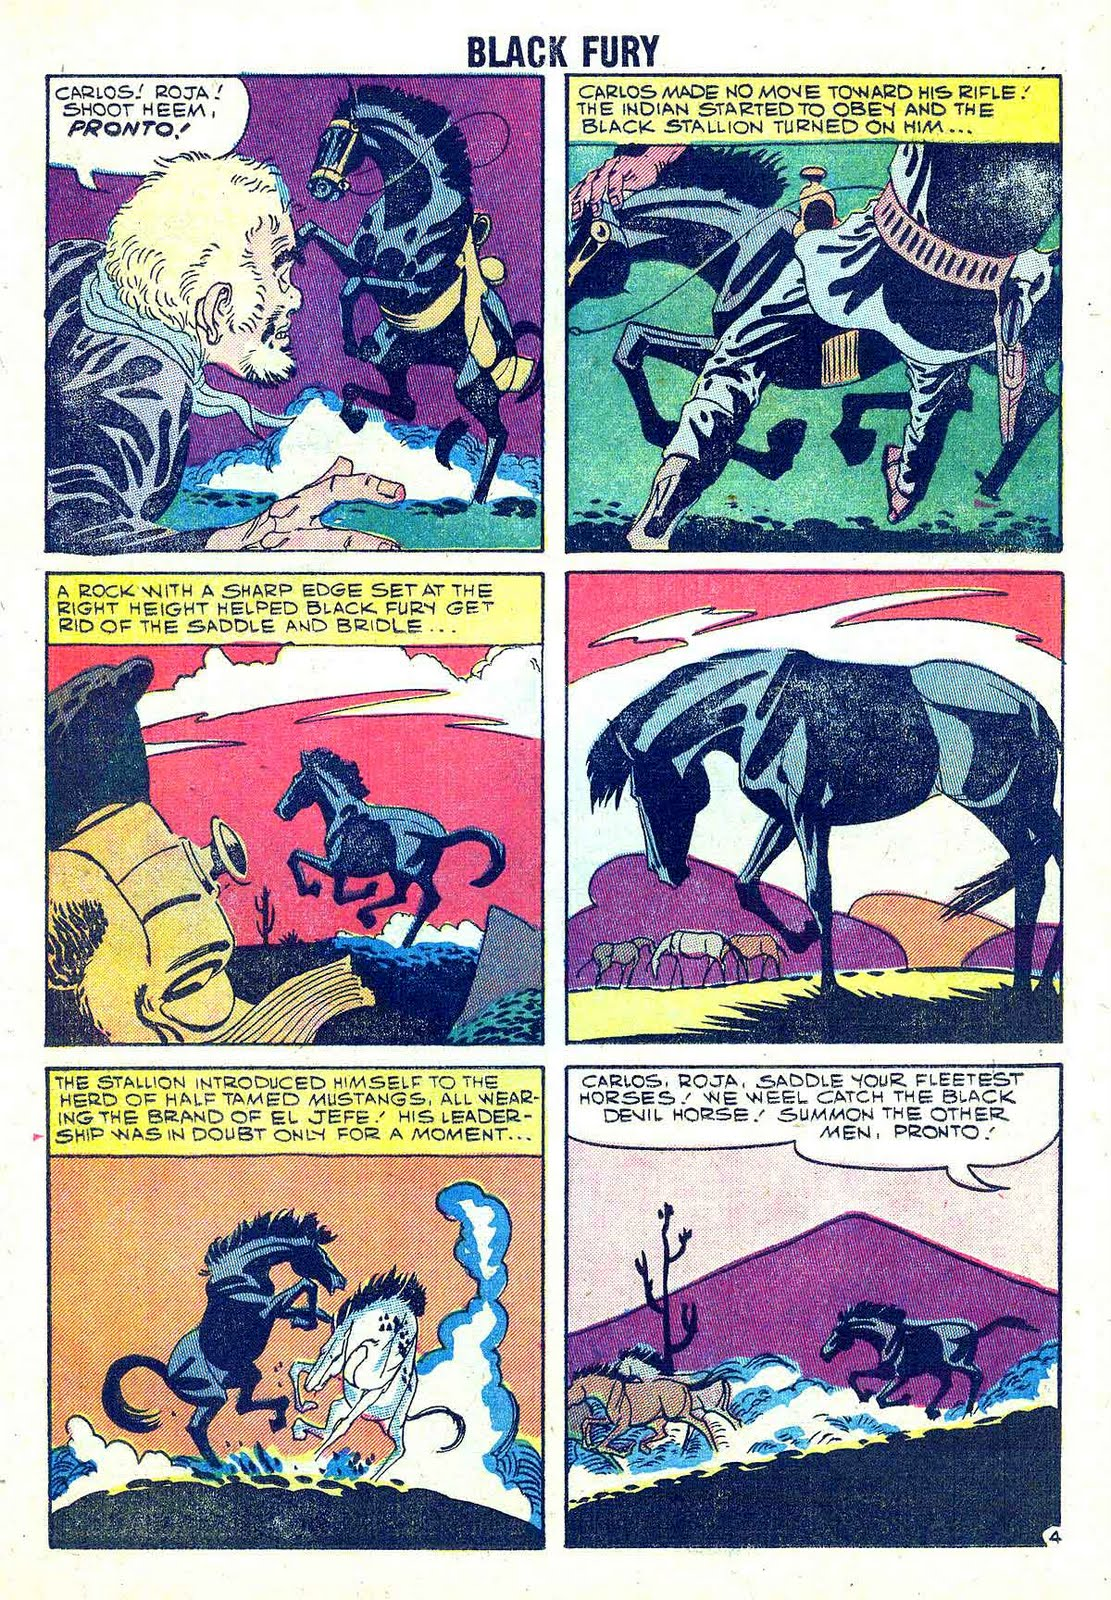 Black Fury v1 #18 charlton comic book page art by Steve Ditko